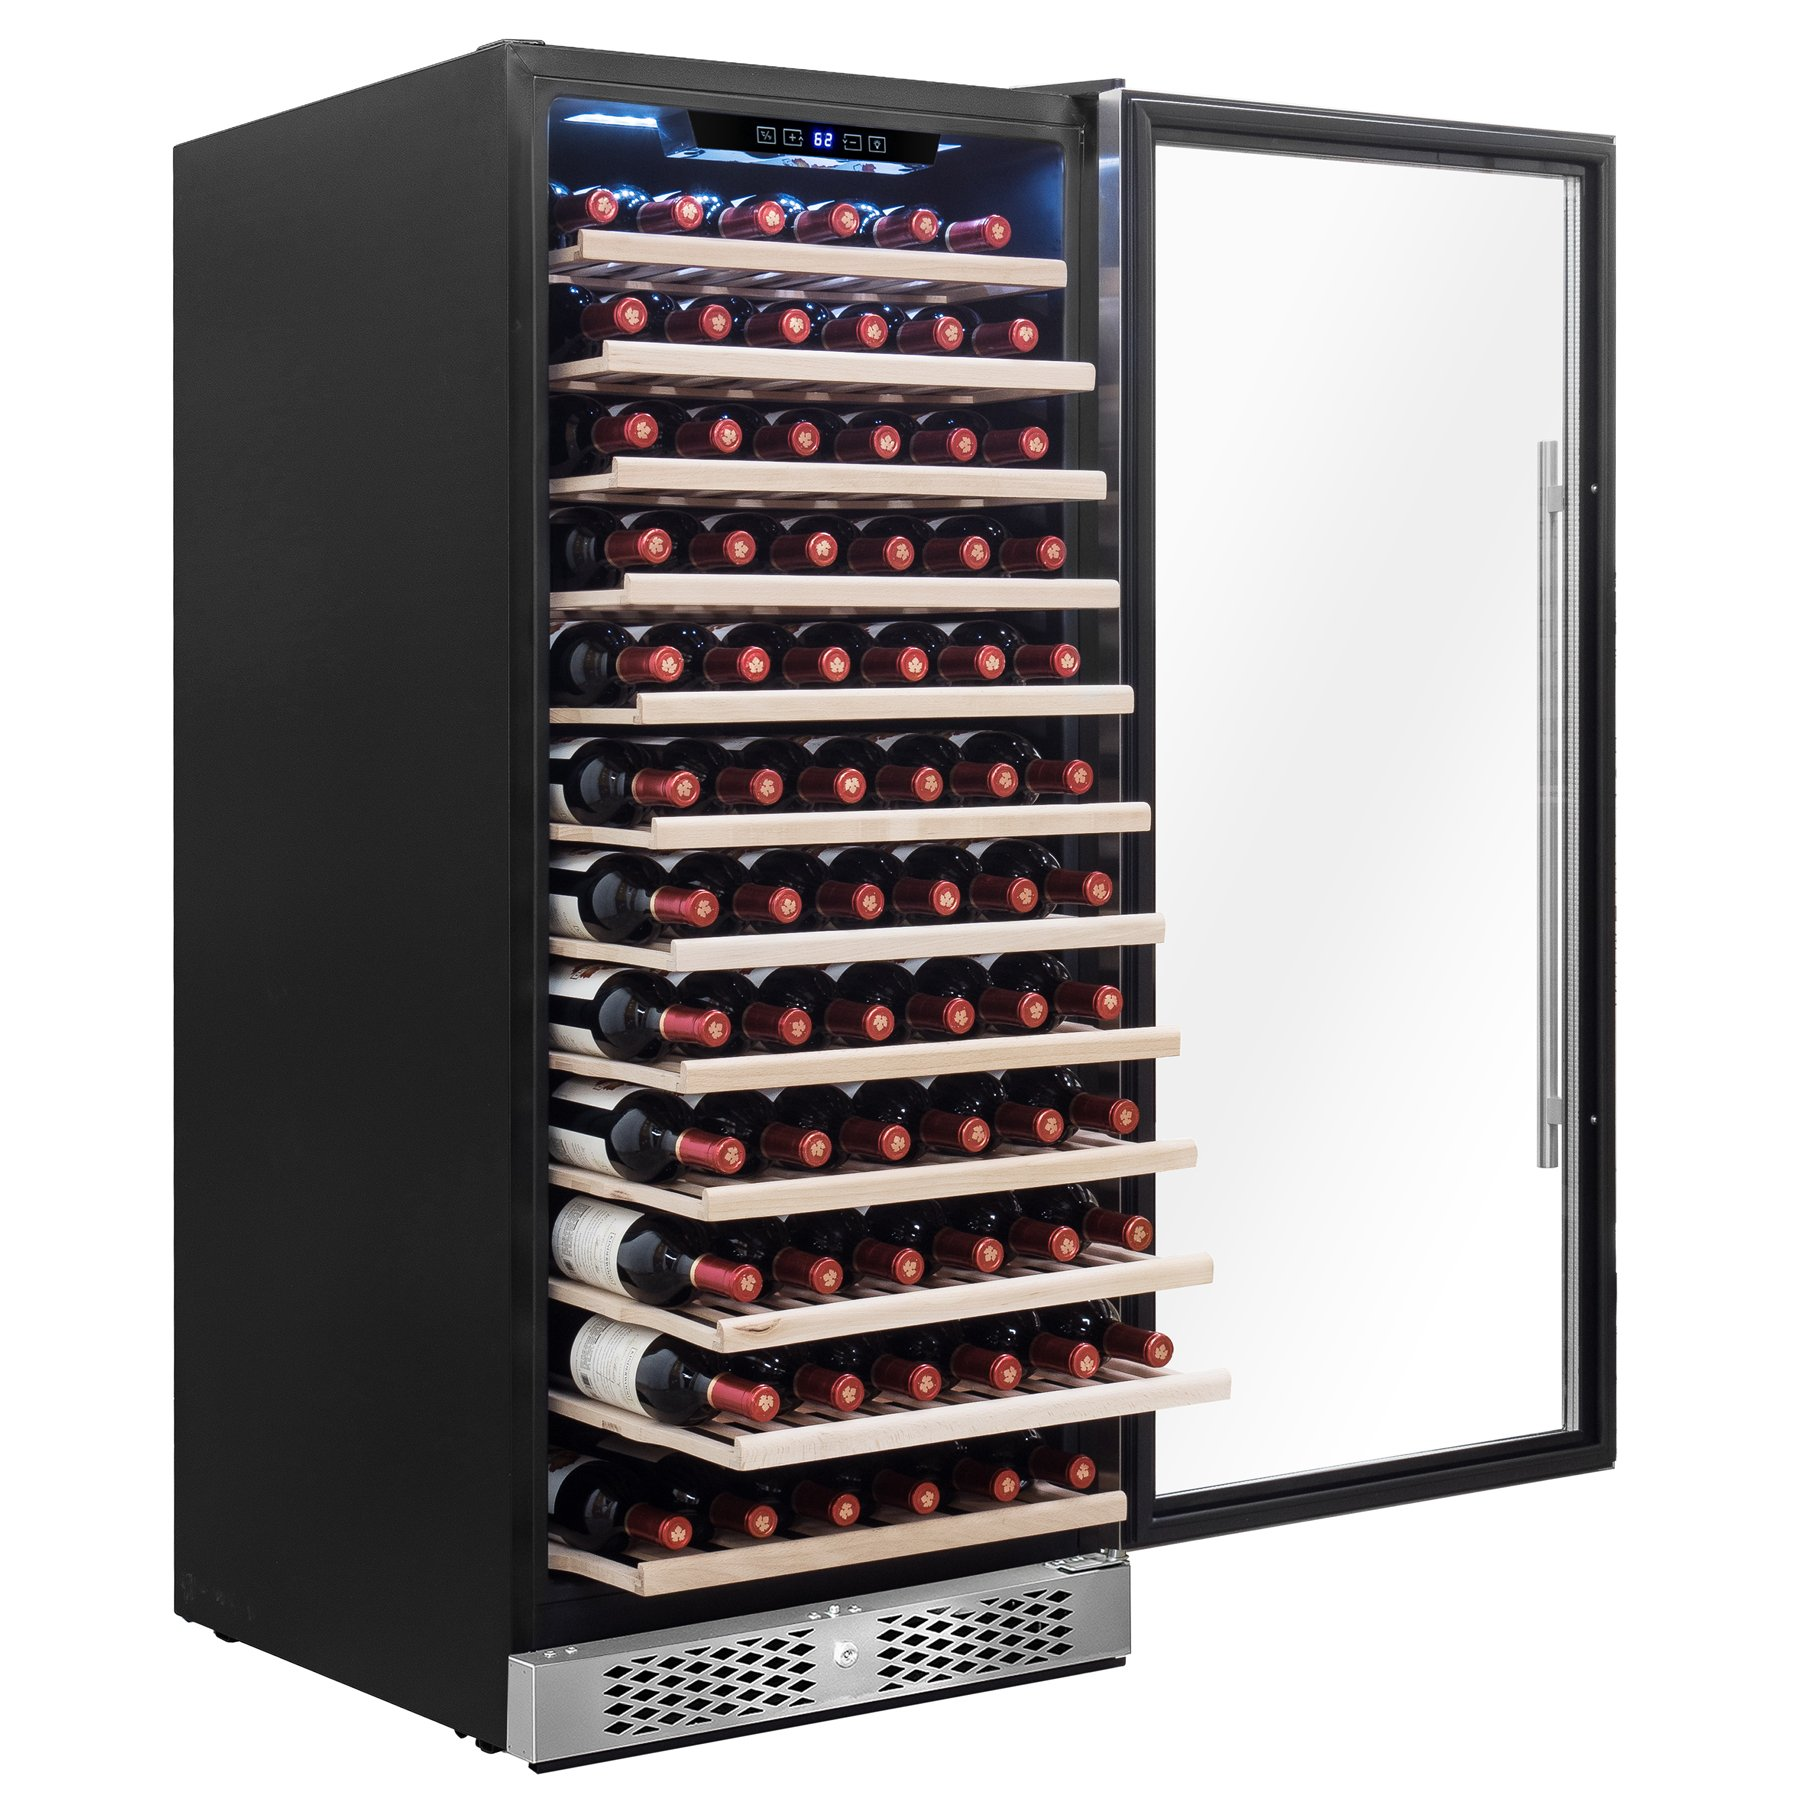 AKDY 127 Bottles Capacity Single Zone Touch Control Freestanding Wine Cooler Cellar